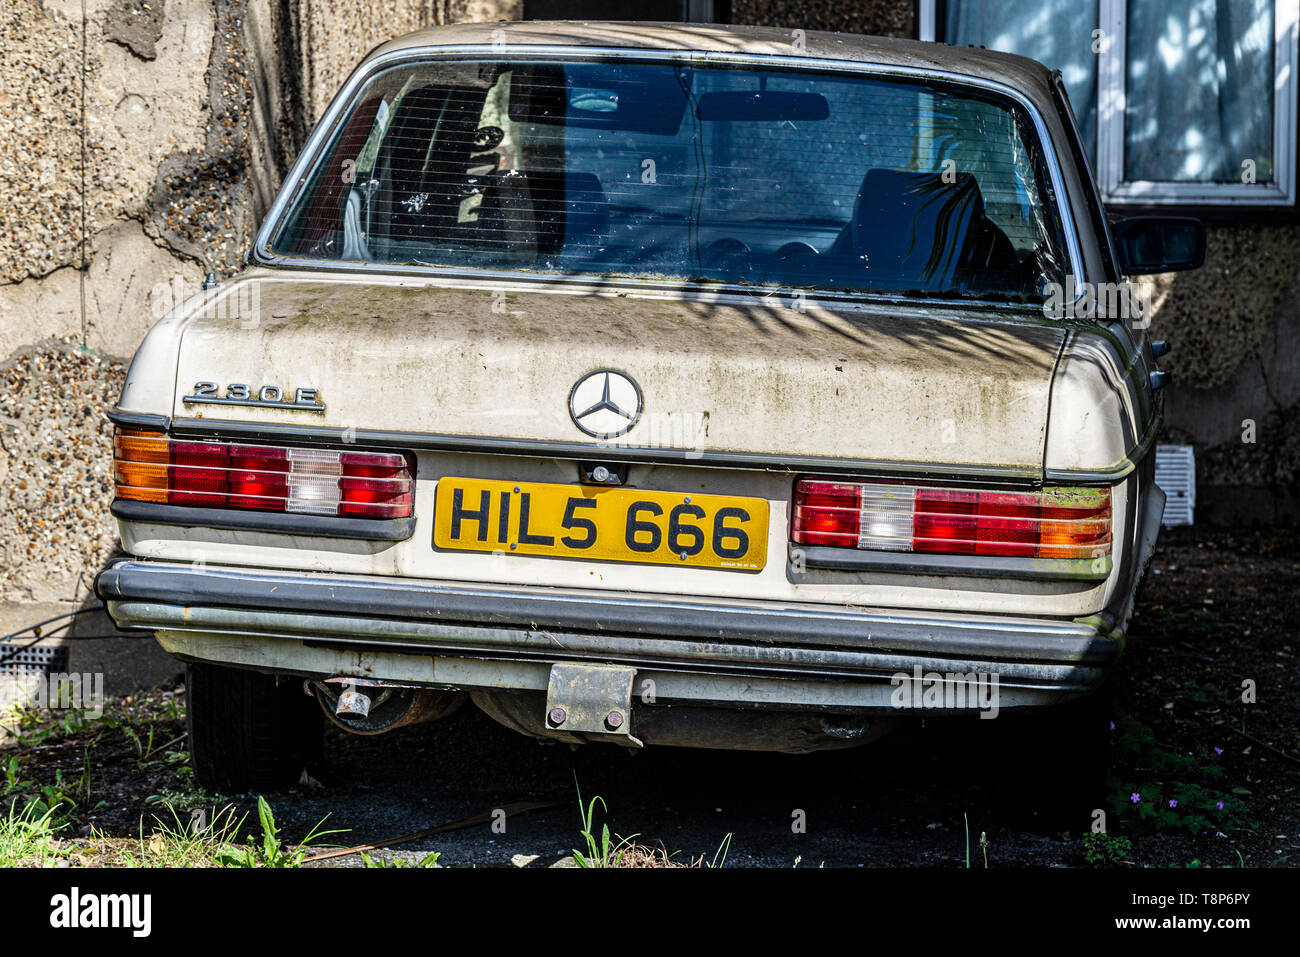 mercedes-230e-saloon-car-looking-forlorn-special-number-plate-hils-666-number-of-the-beast-registration-plate-hil-5666-green-algae-growth-T8P6PY.jpg